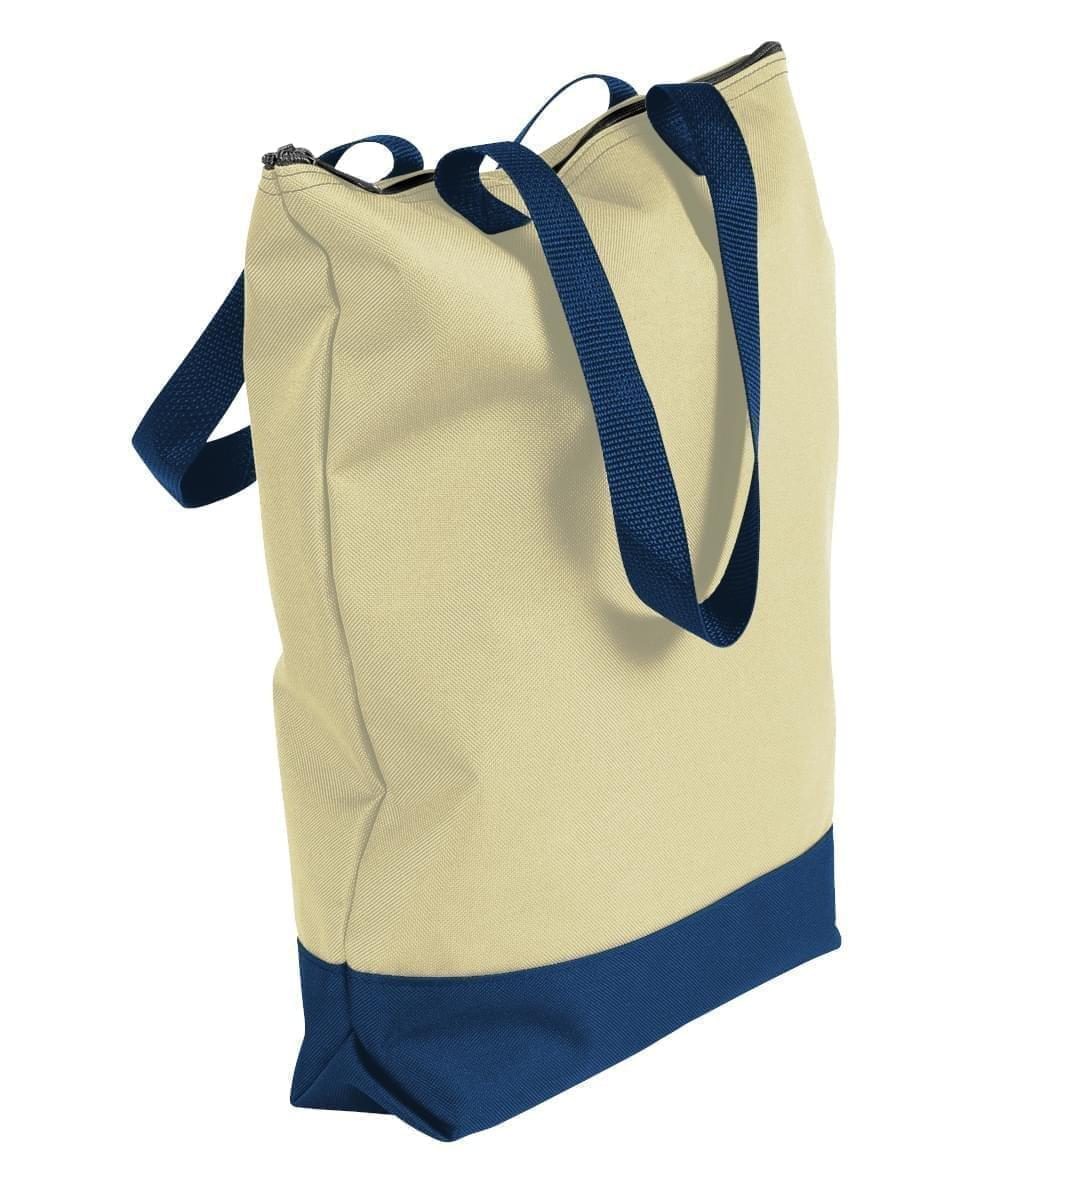 USA Made Canvas Portfolio Tote Bags, Natural-Navy, 1AAMX1UAKZ